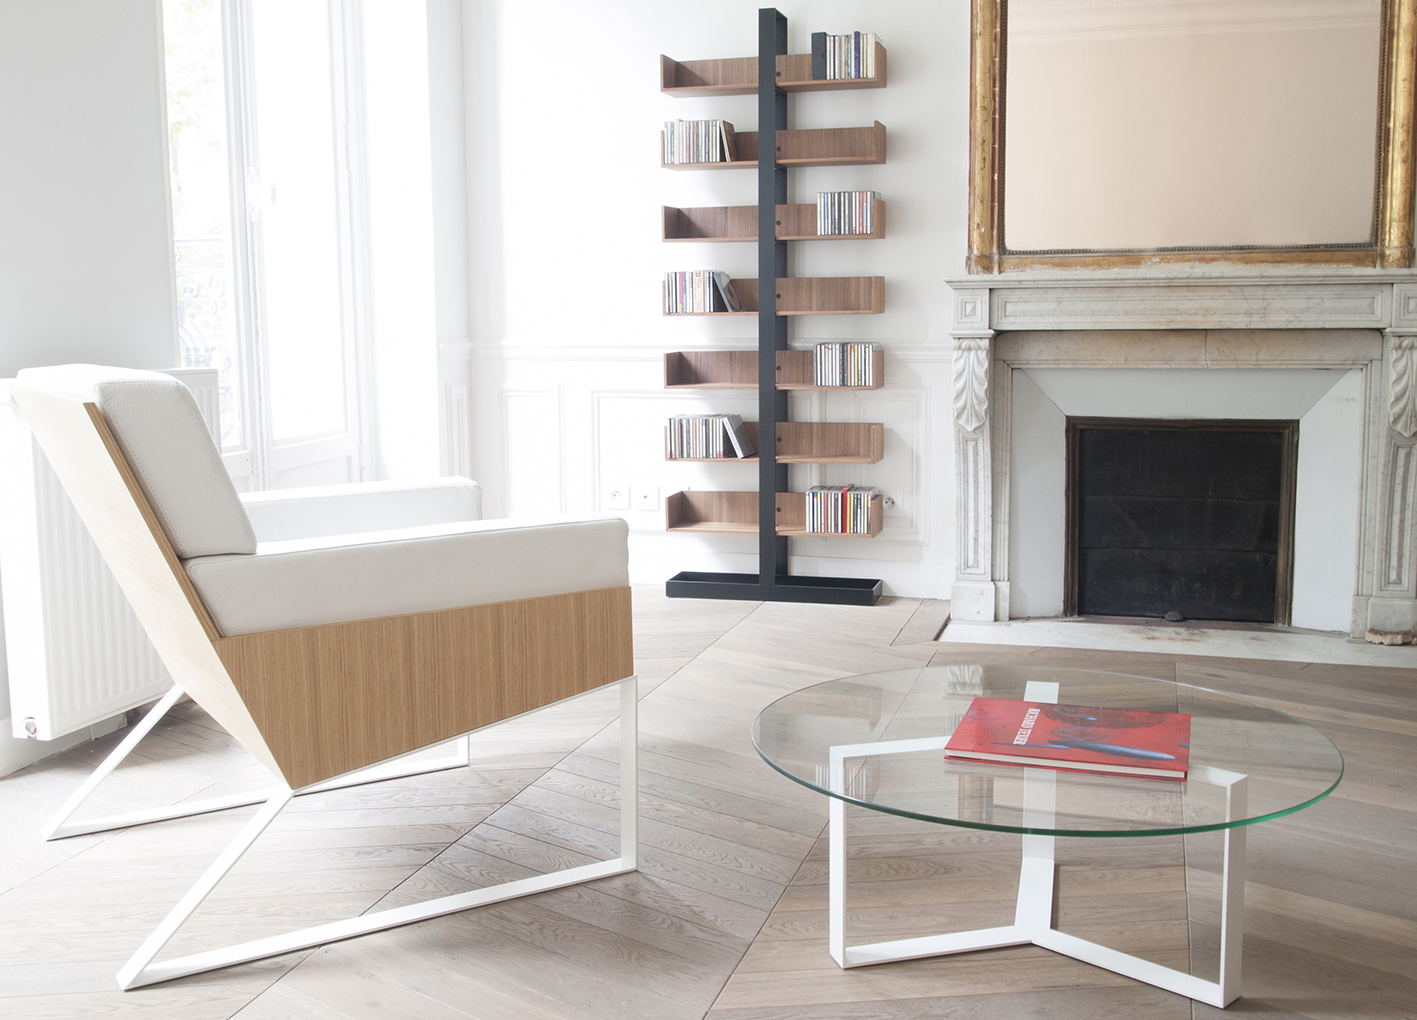 Les meubles design d 39 alex de rouvray decocrush for Meuble design